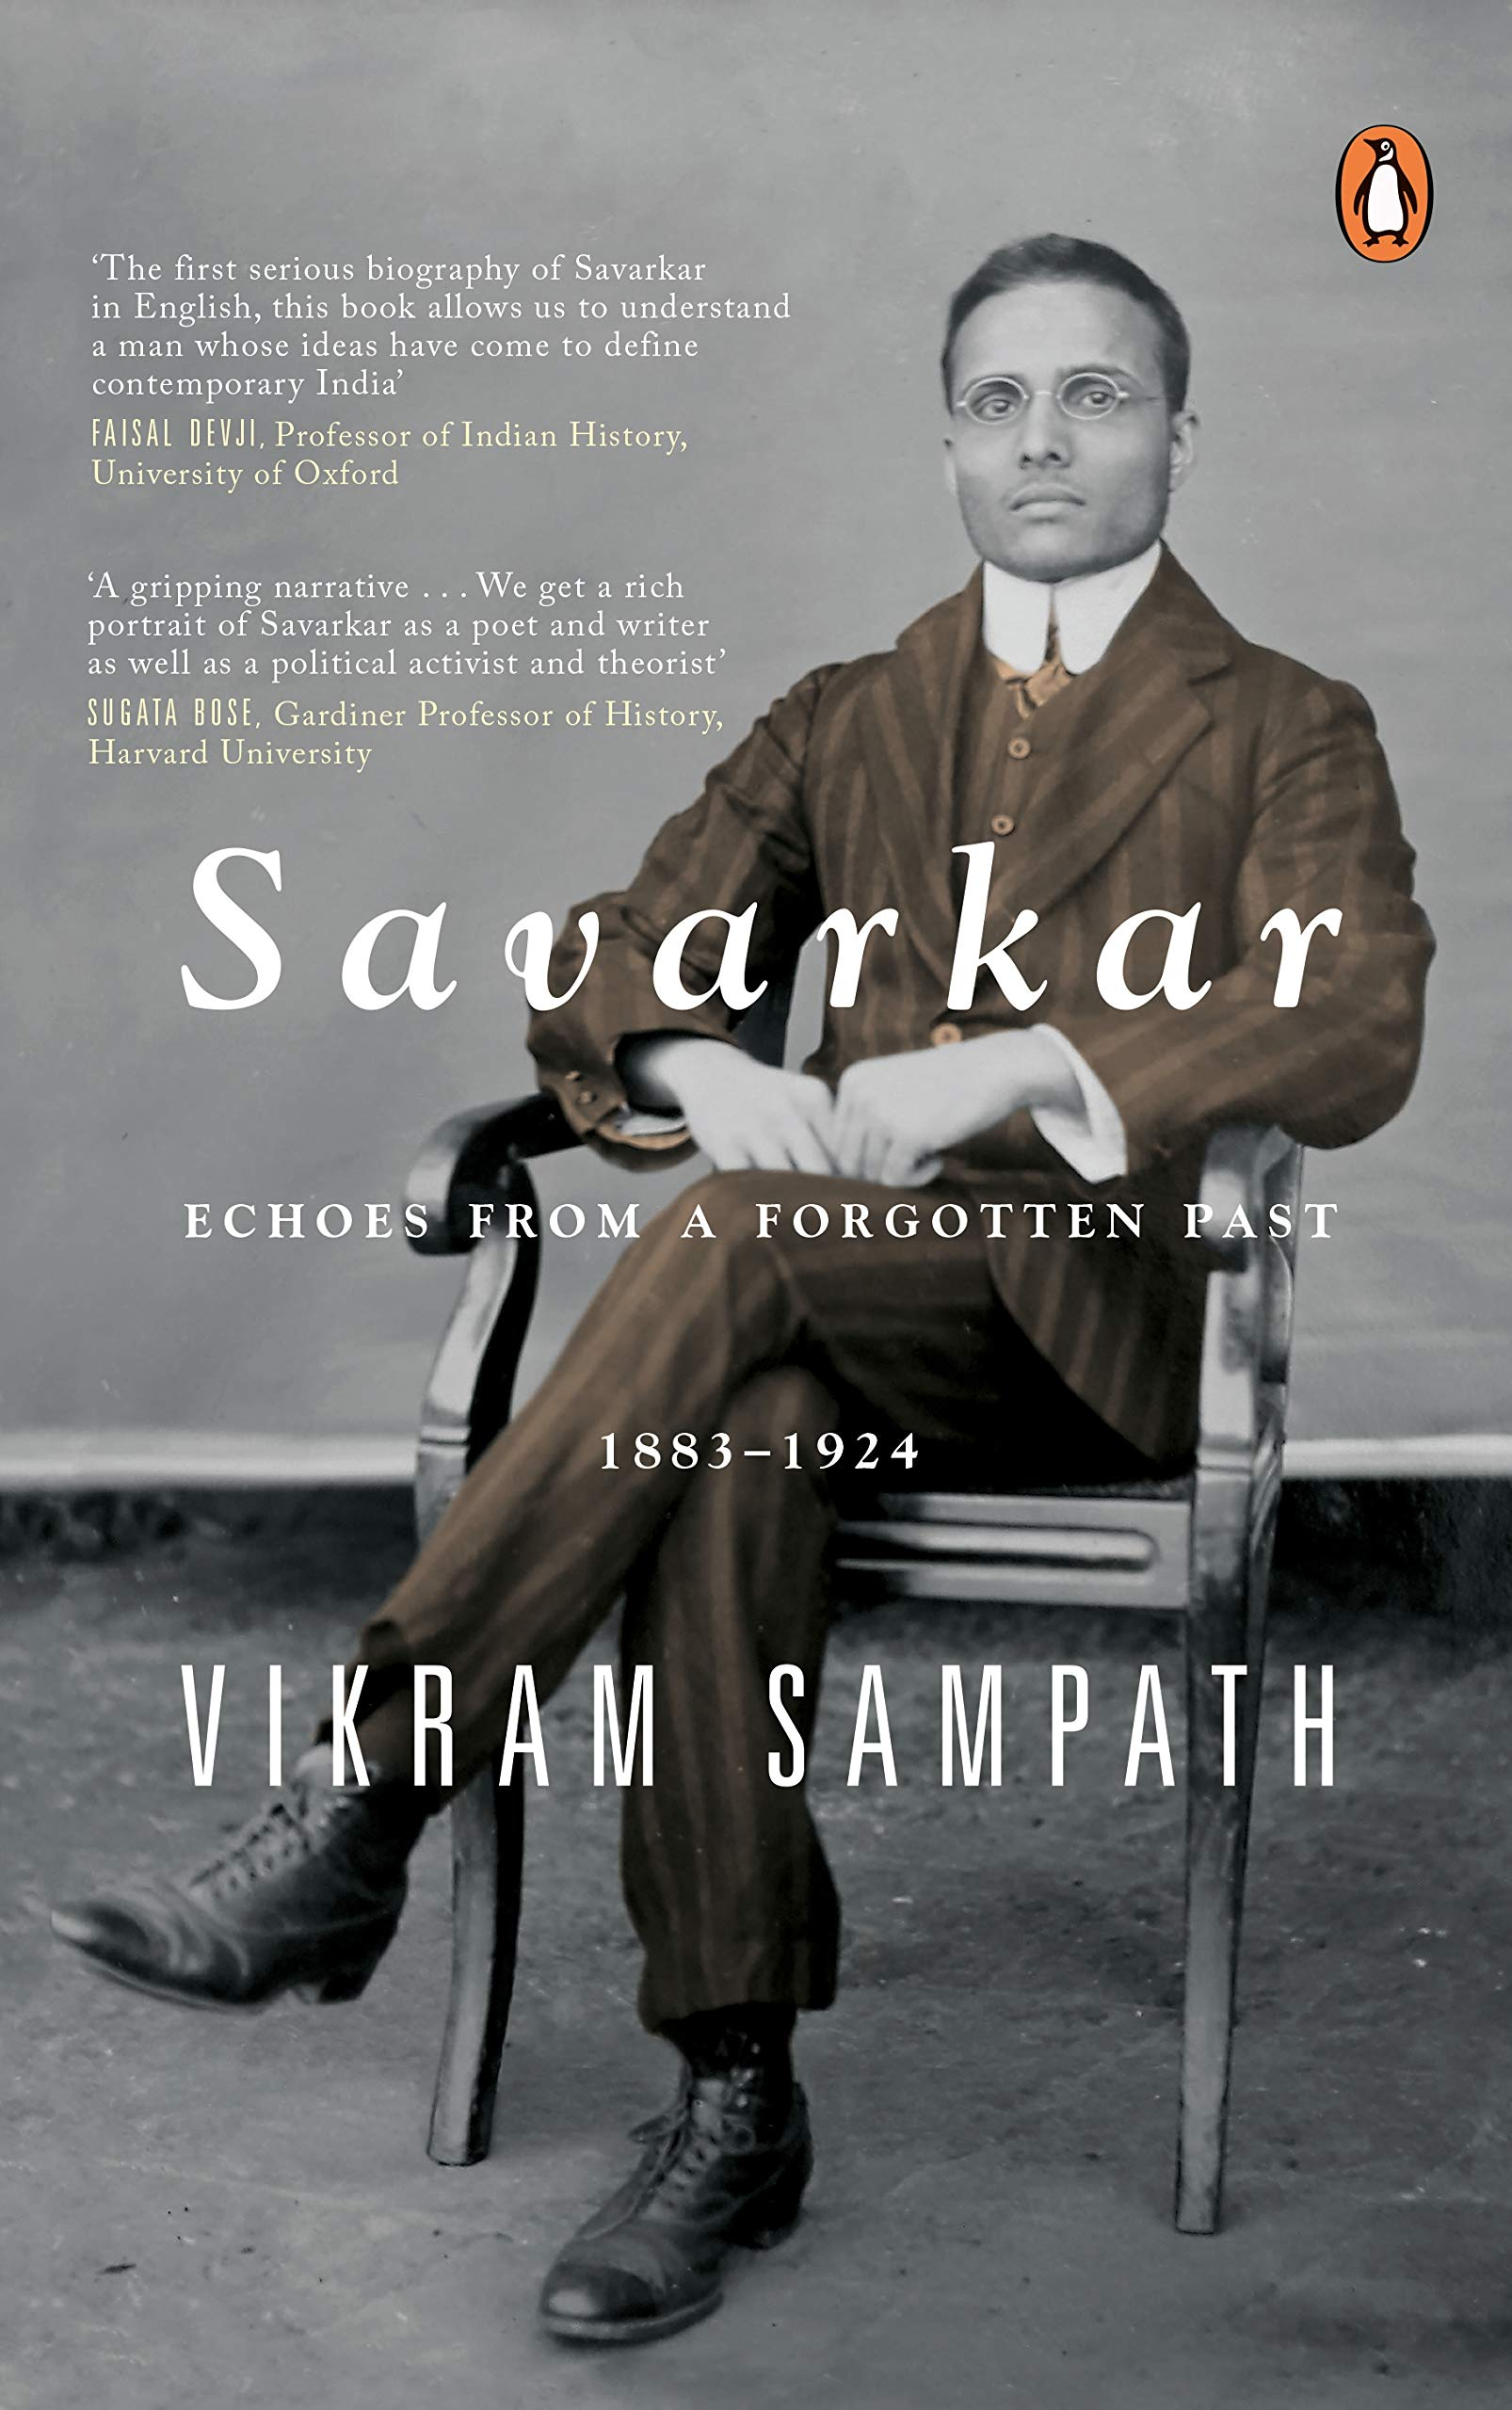 The Savarkar revival